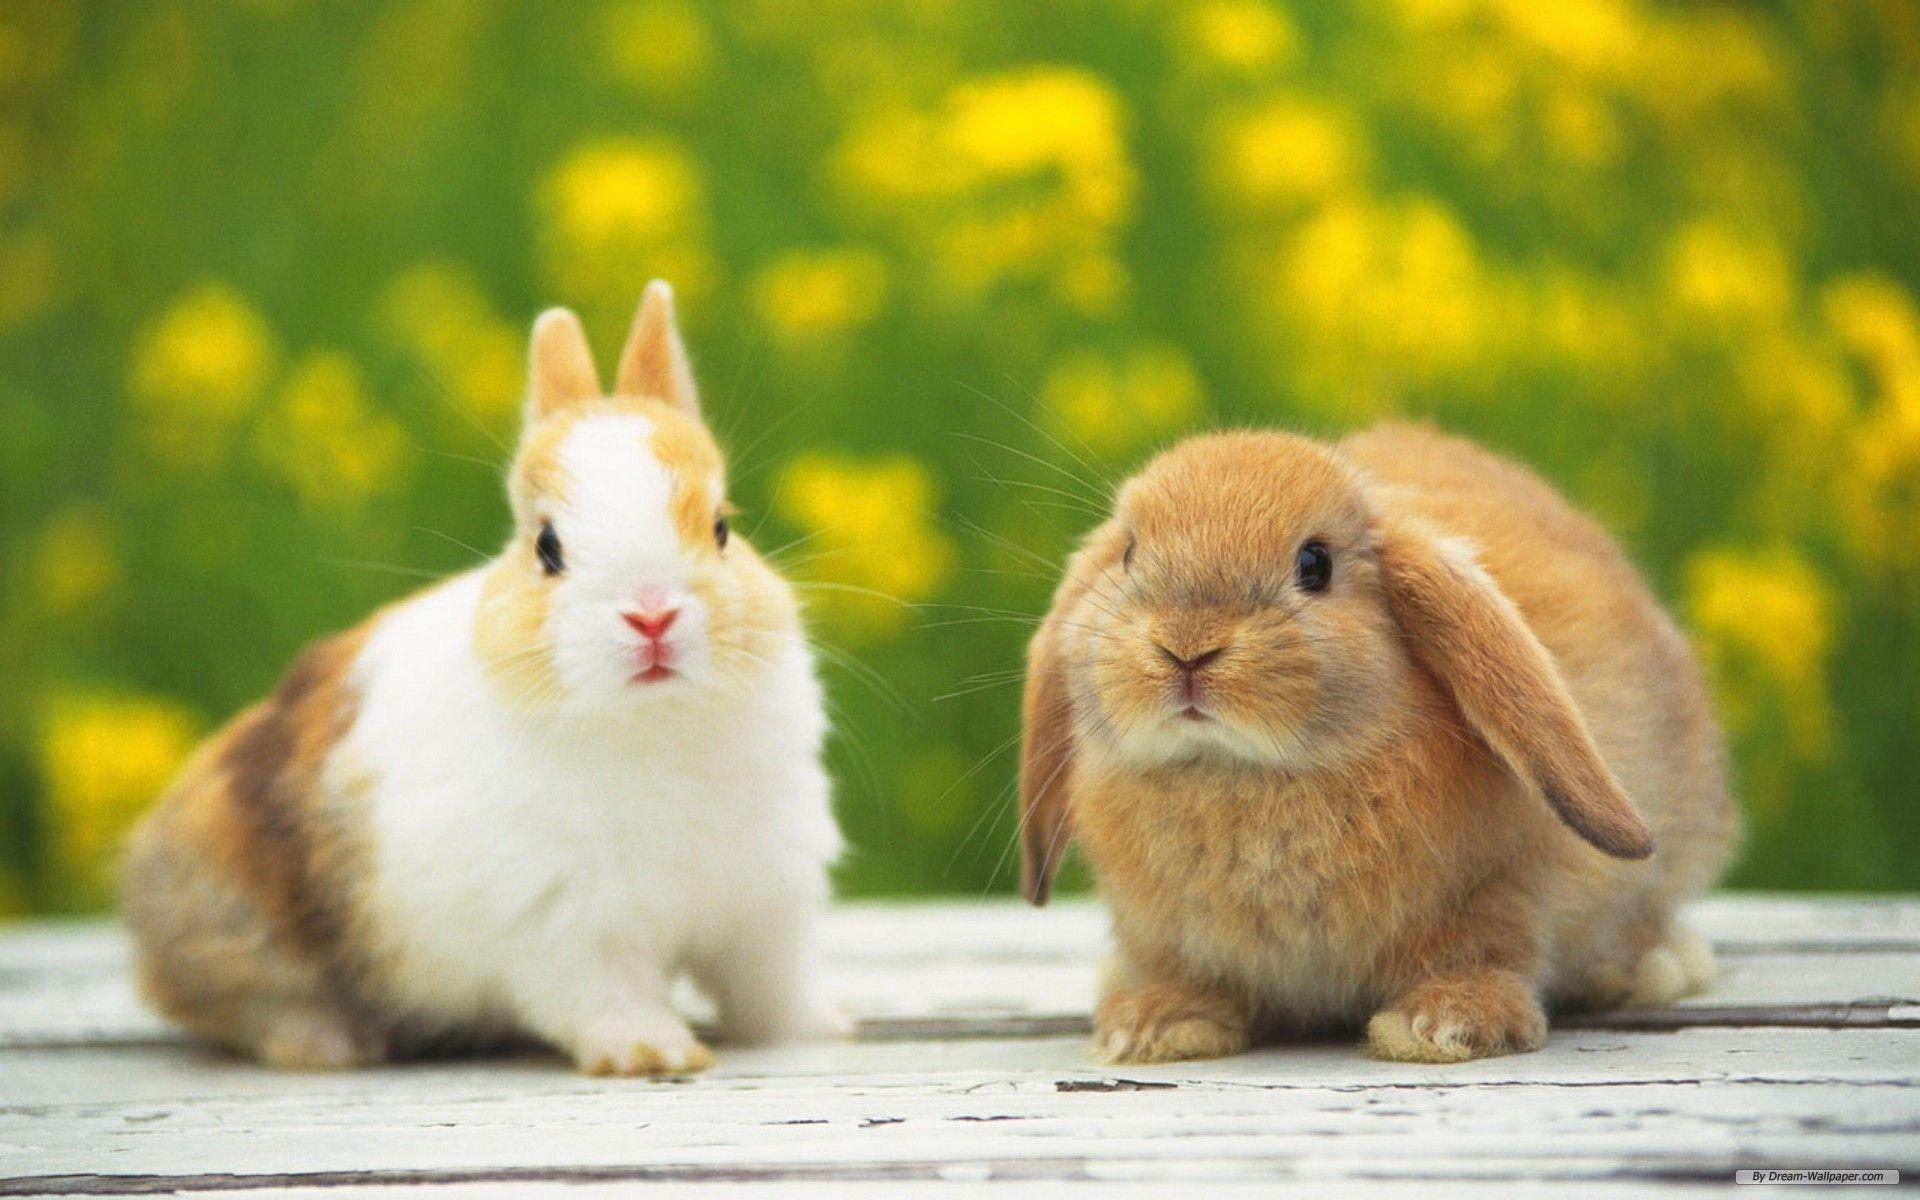 Rabbit Wallpapers - Full HD wallpaper search - page 8